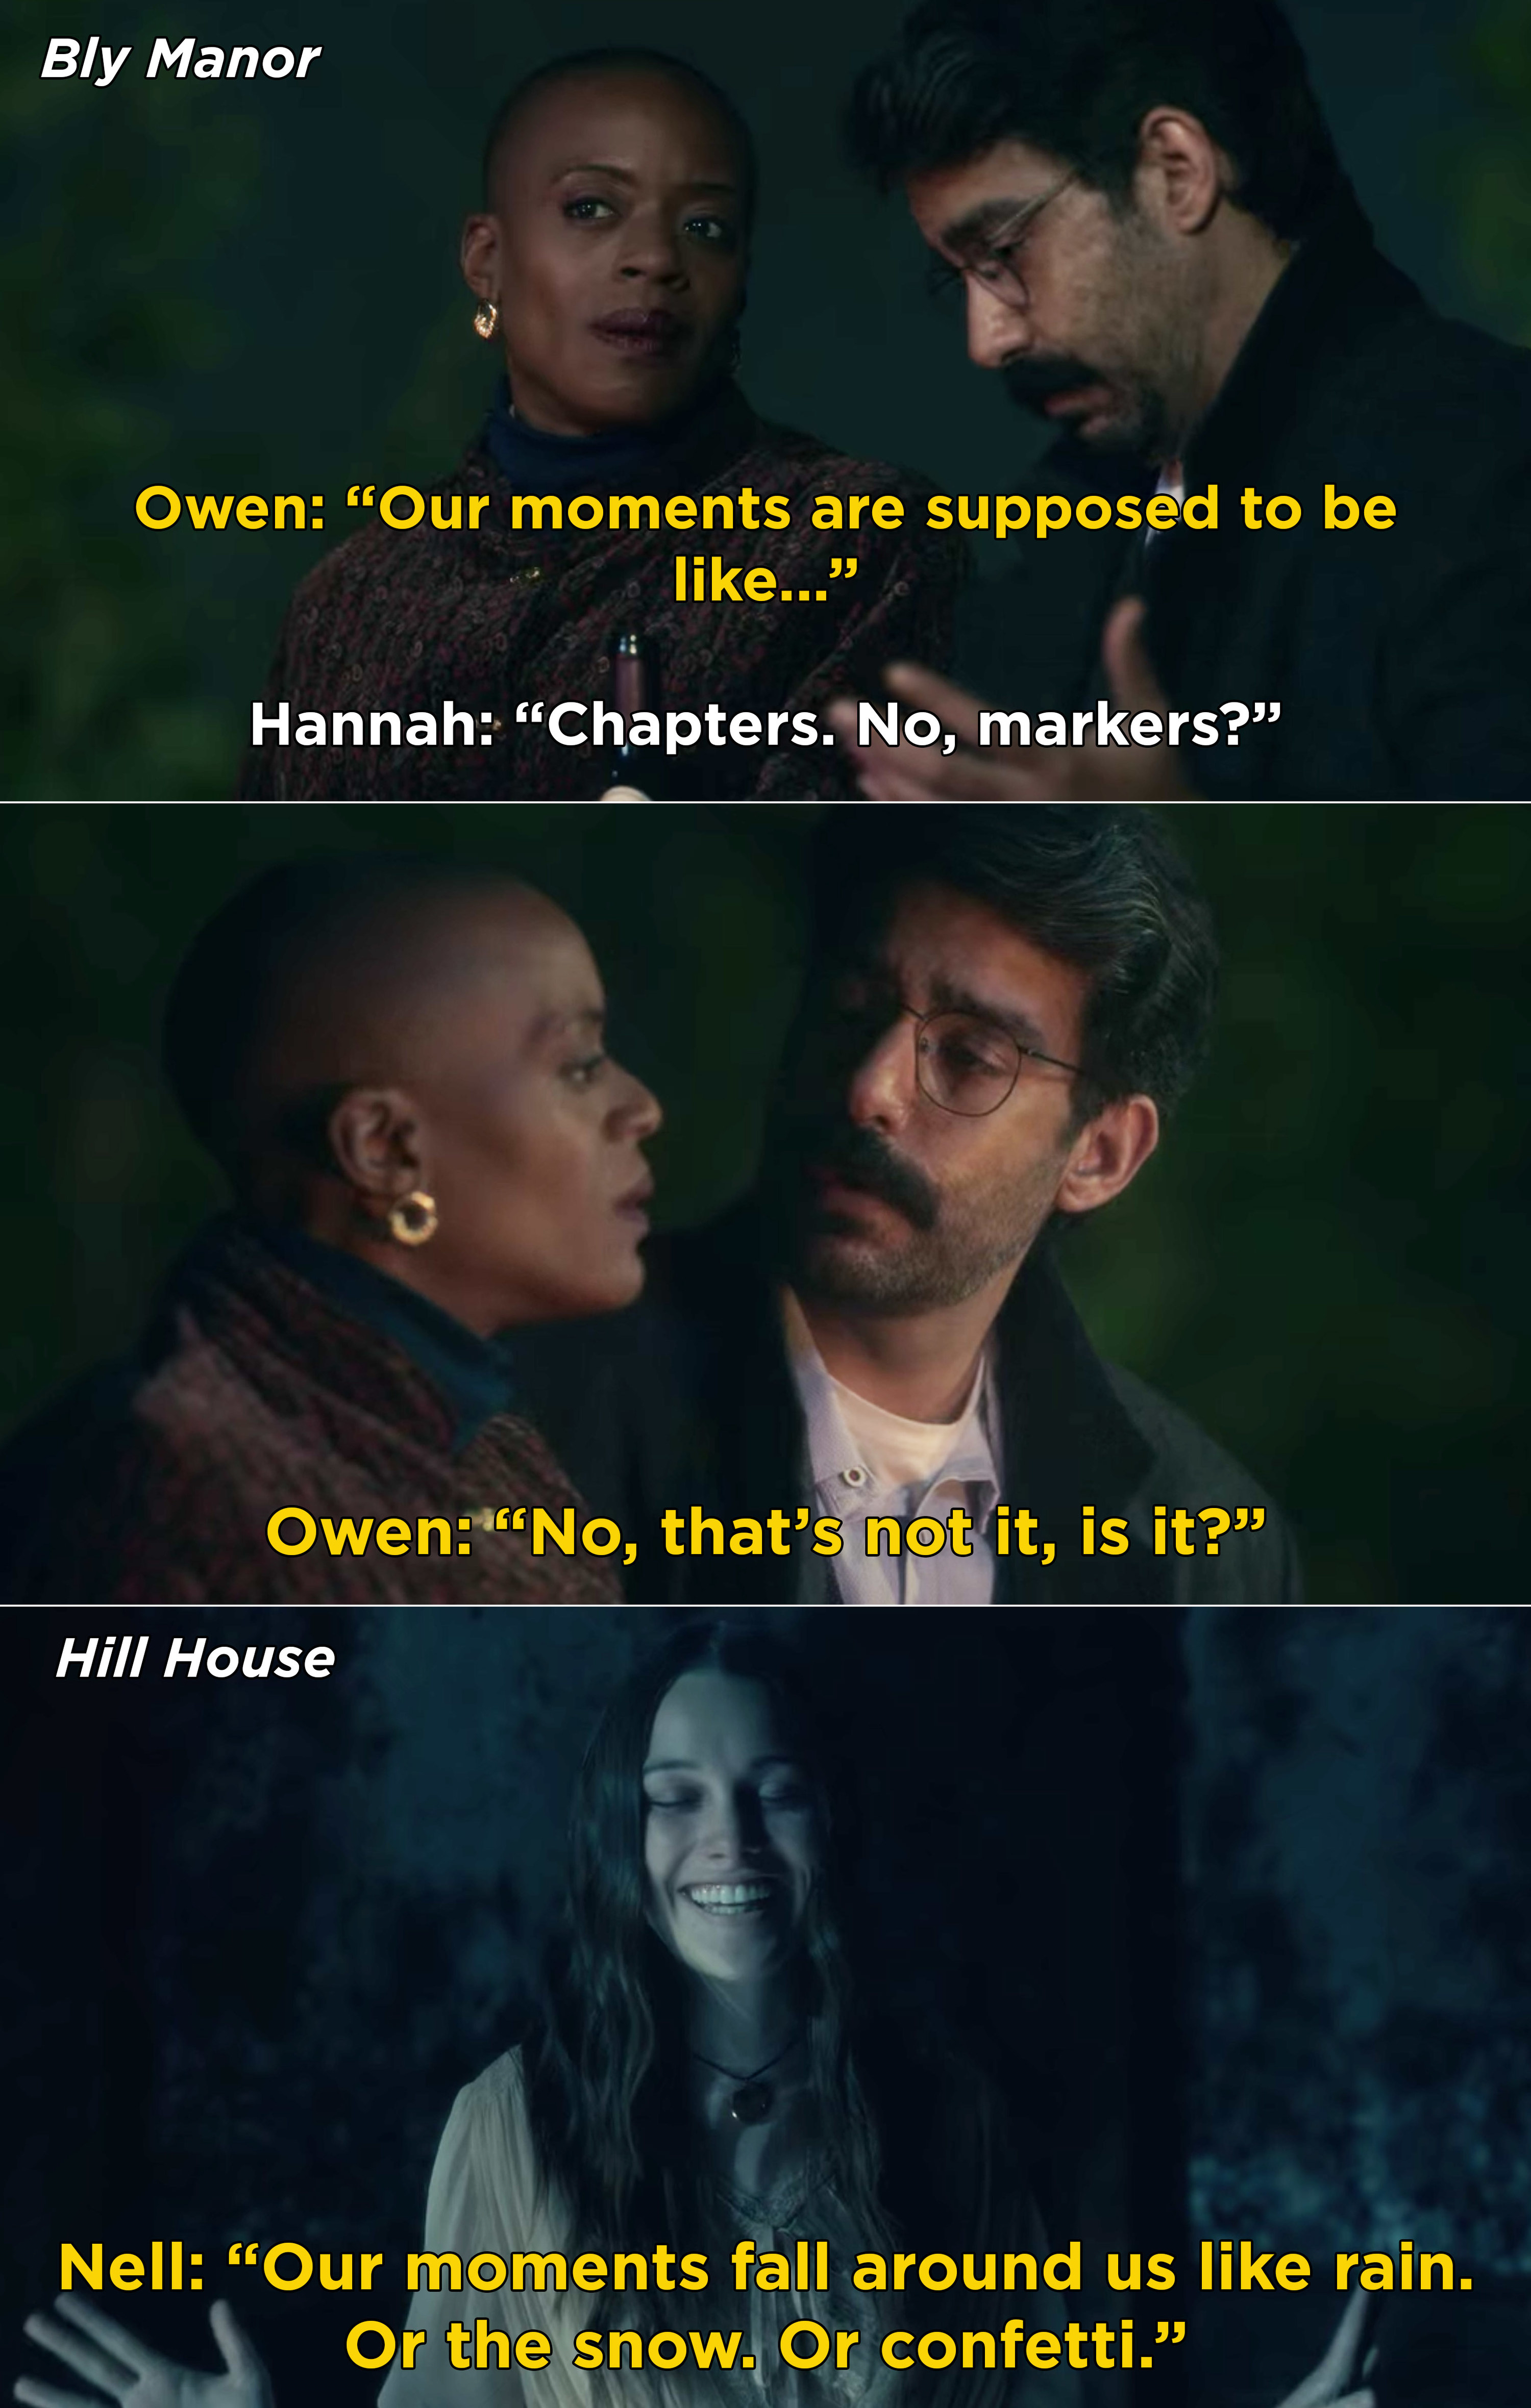 """Owen and Hannah talking about what moments are supposed to be like vs. Nell saying, """"Our moments fall around us like rain. Or the snow. or confetti"""""""